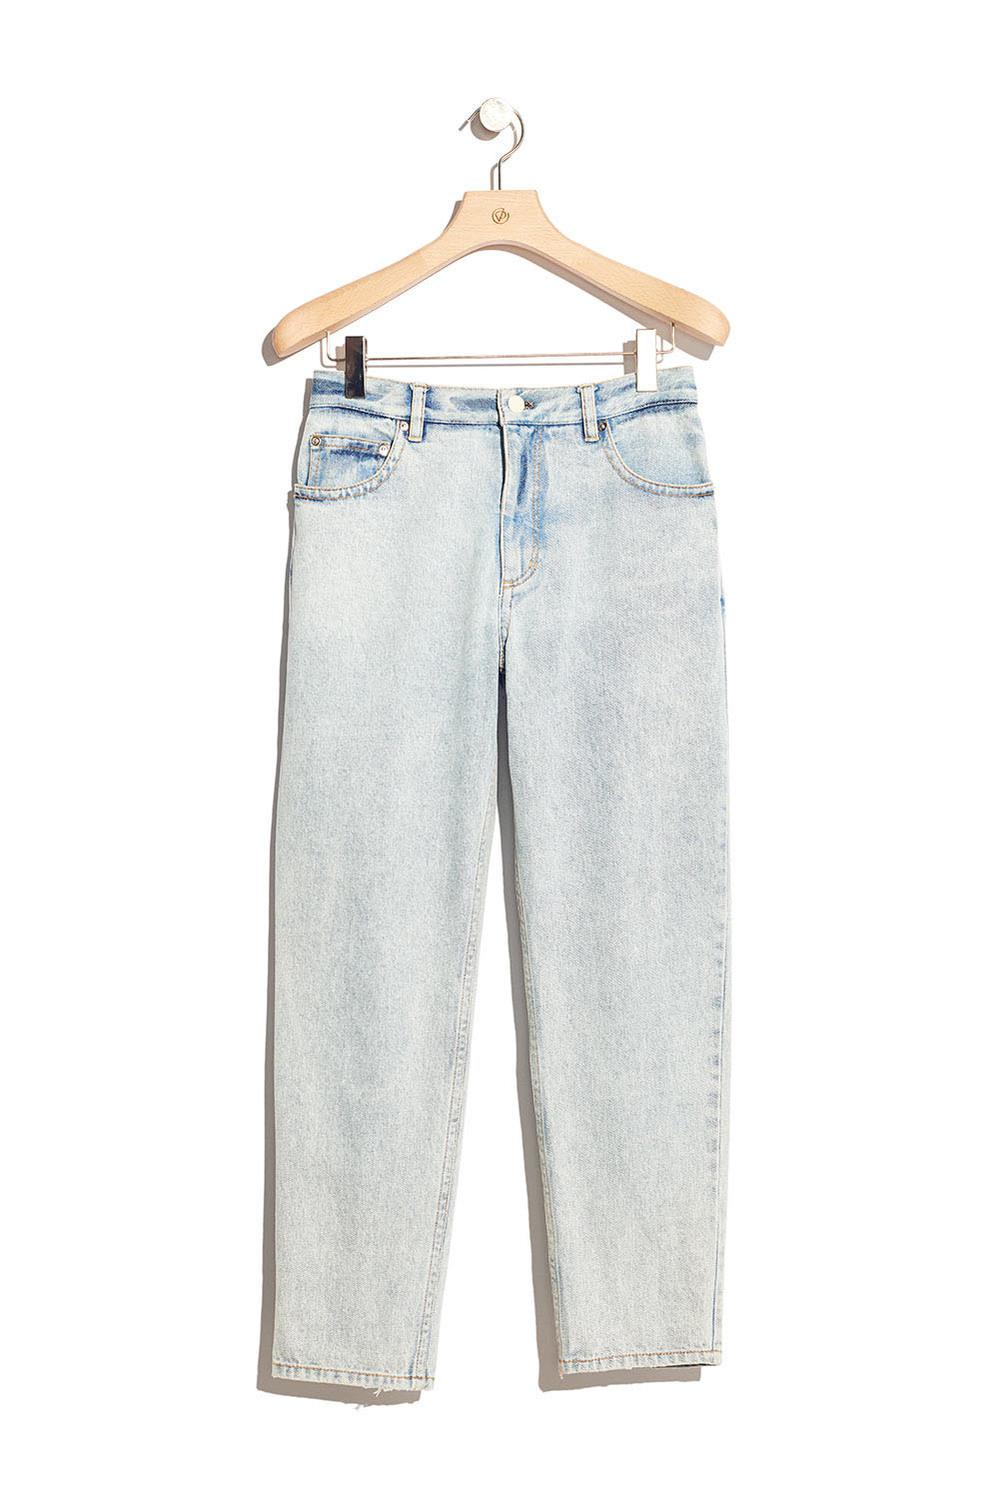 3.1 Phillip Lim Tapered Denim Trouser in Indigo (Blue) for Men